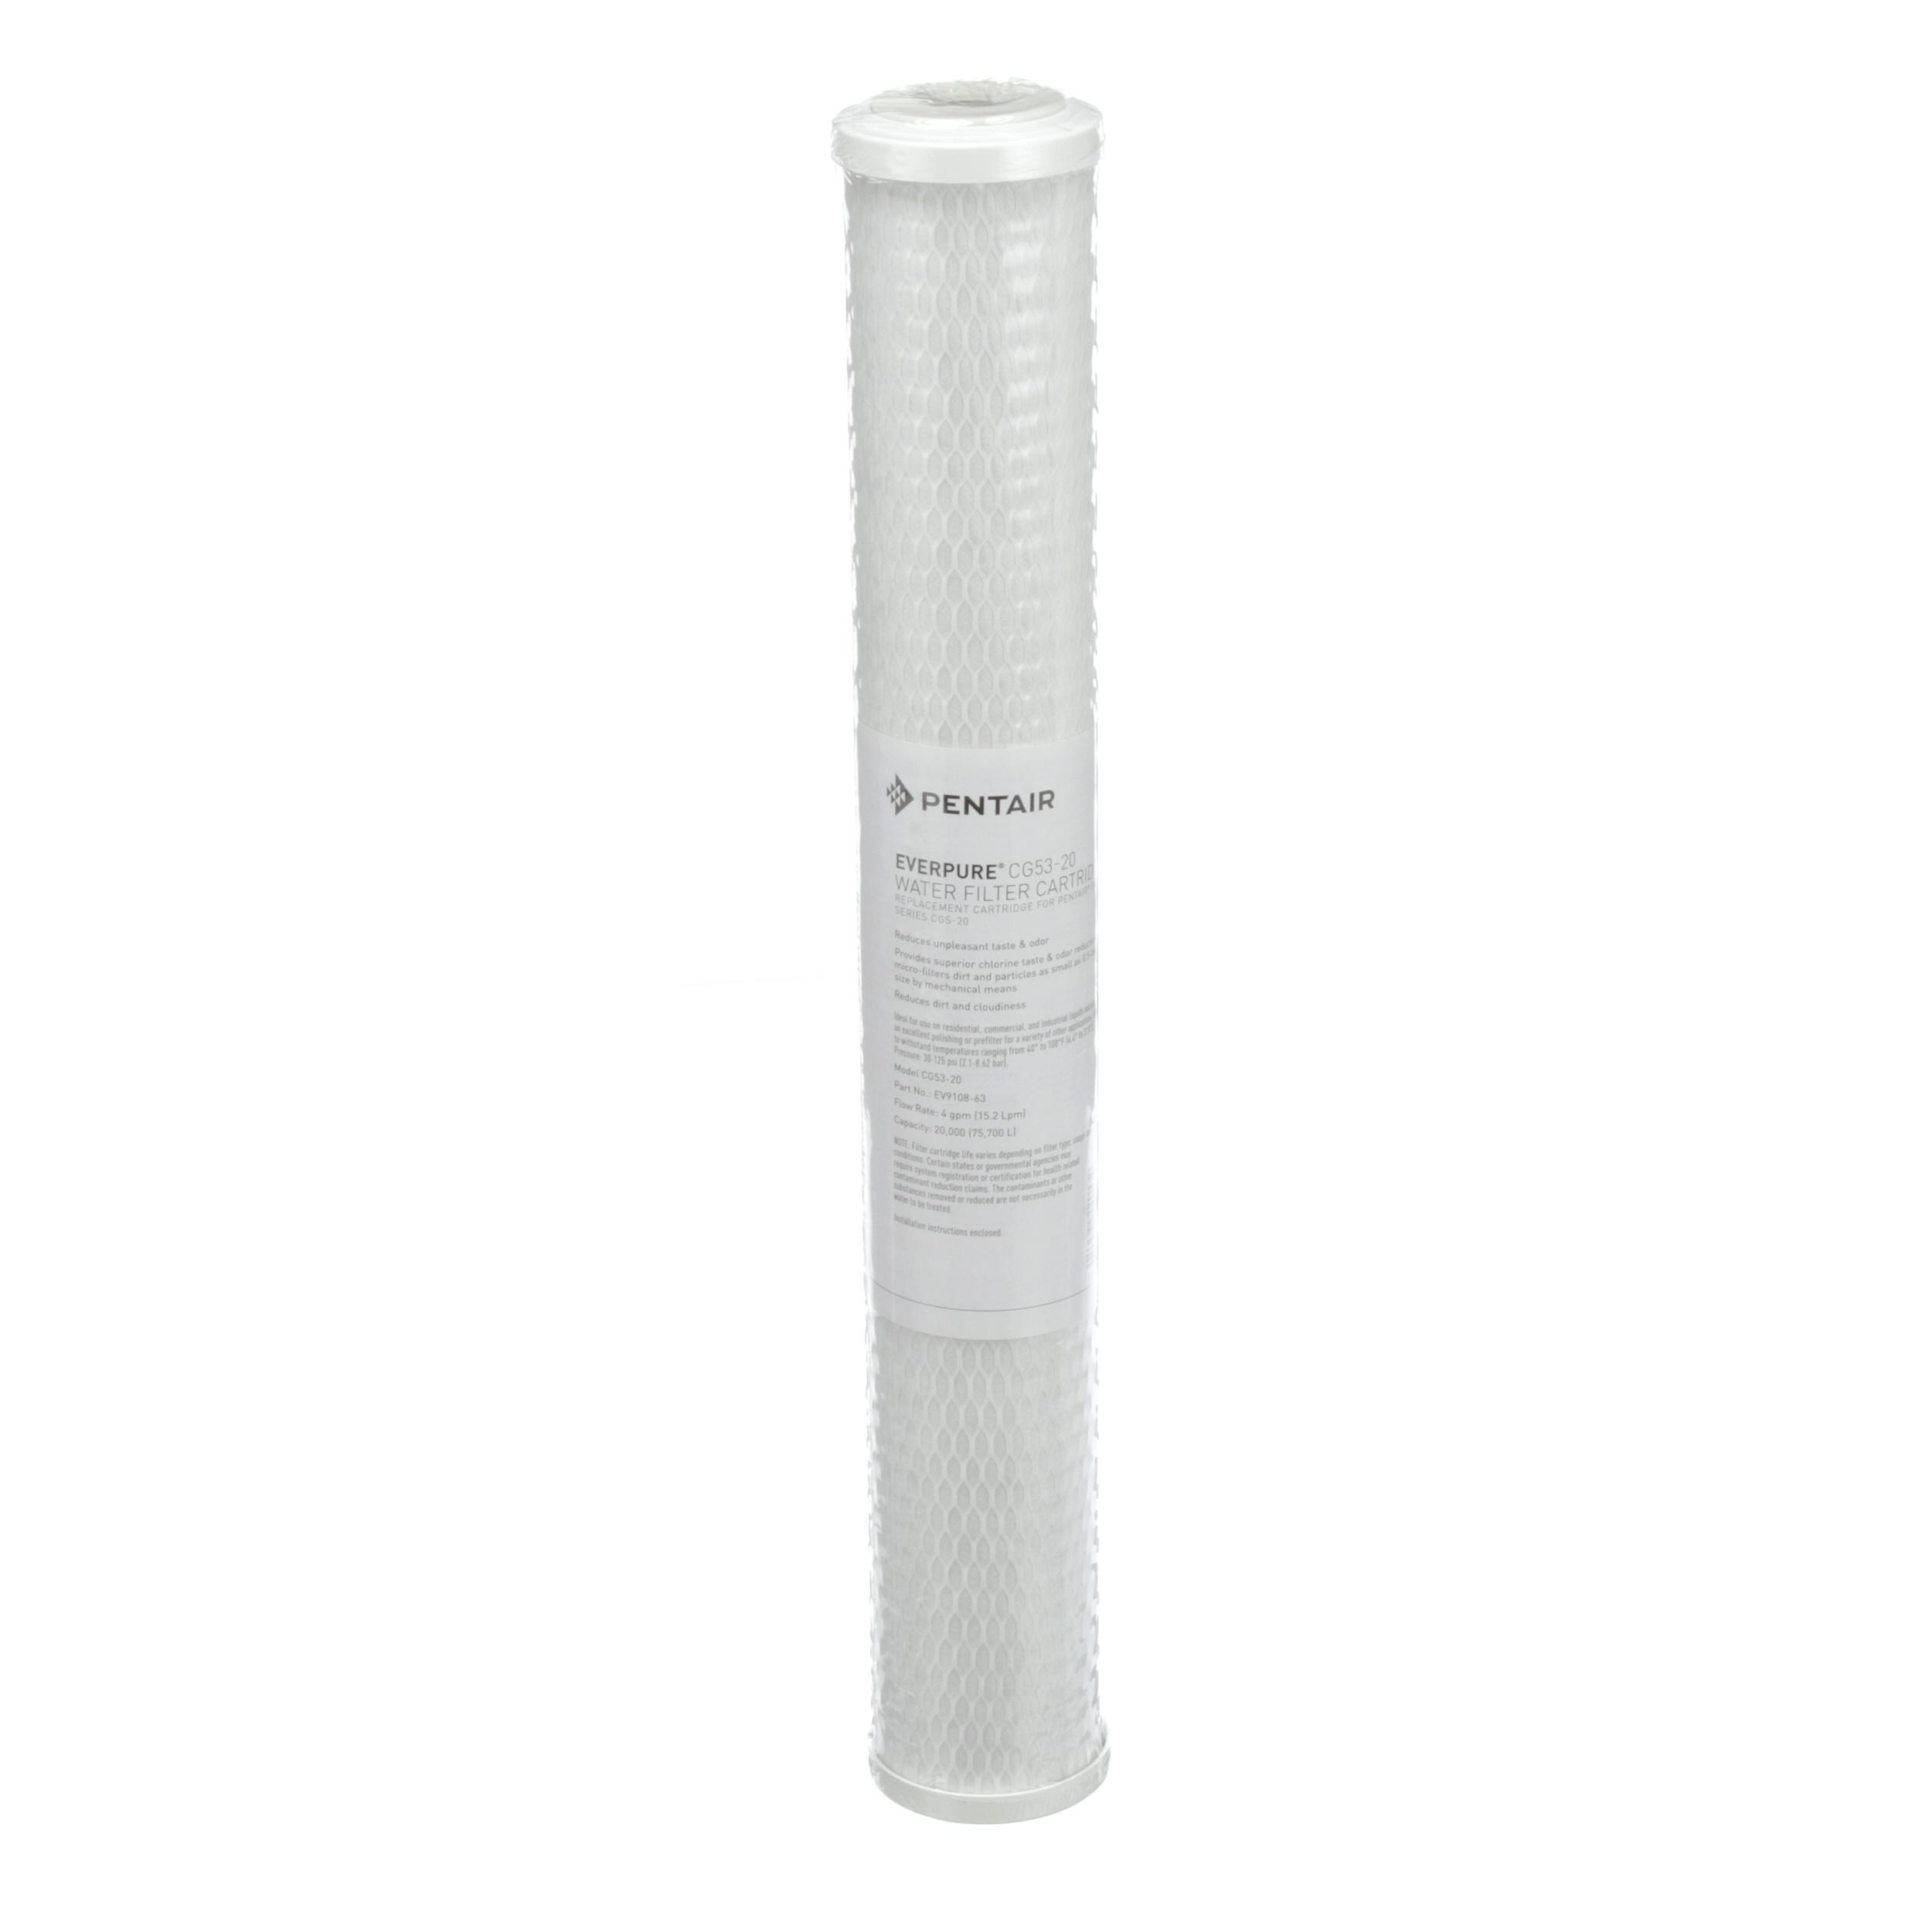 Everpure filter cartridge part ev910863 for Pentair everpure